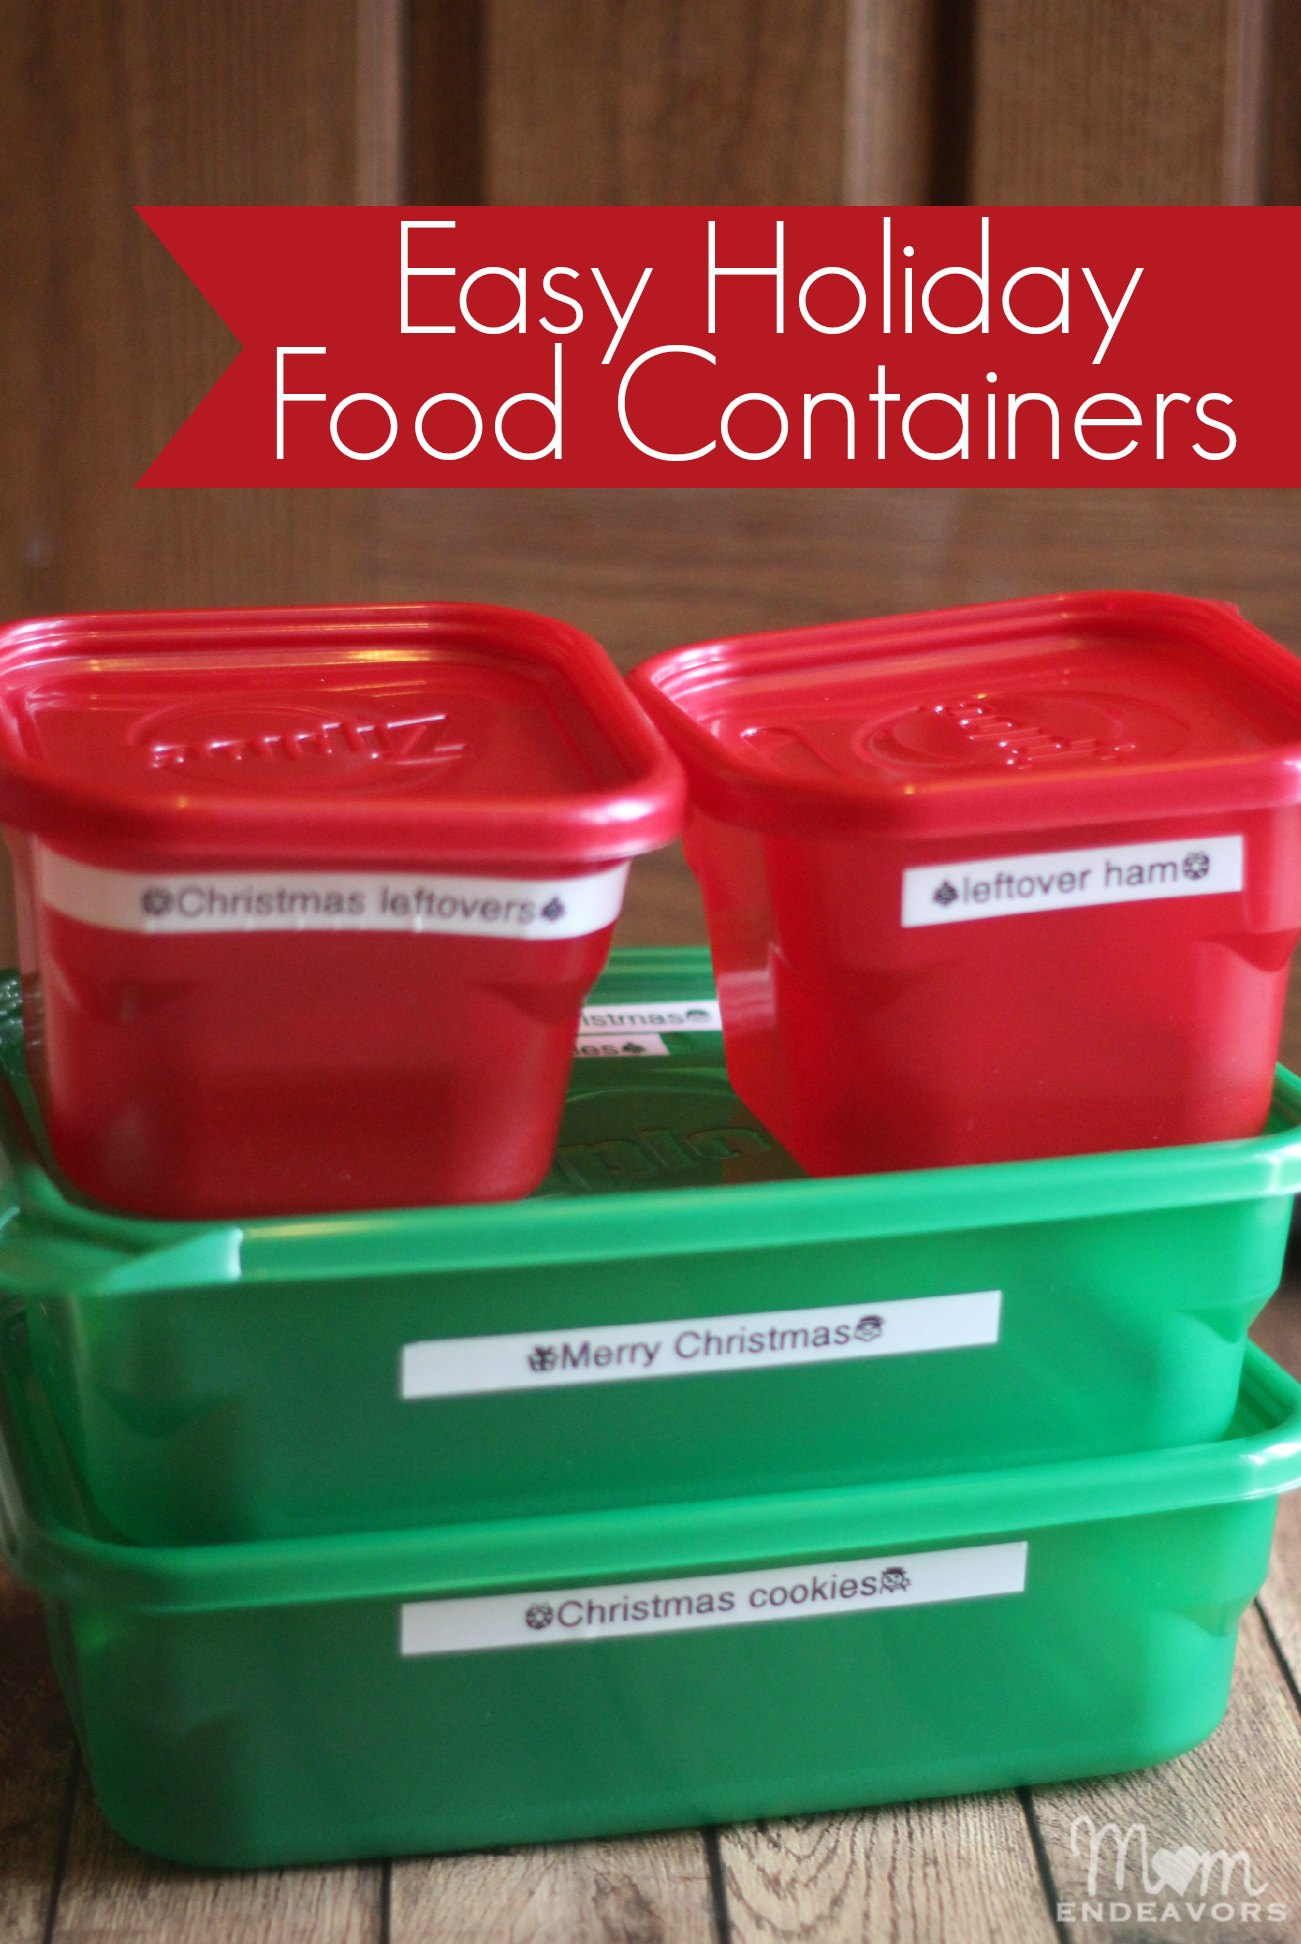 Easy Holiday Food Containers : christmas food storage containers  - Aquiesqueretaro.Com